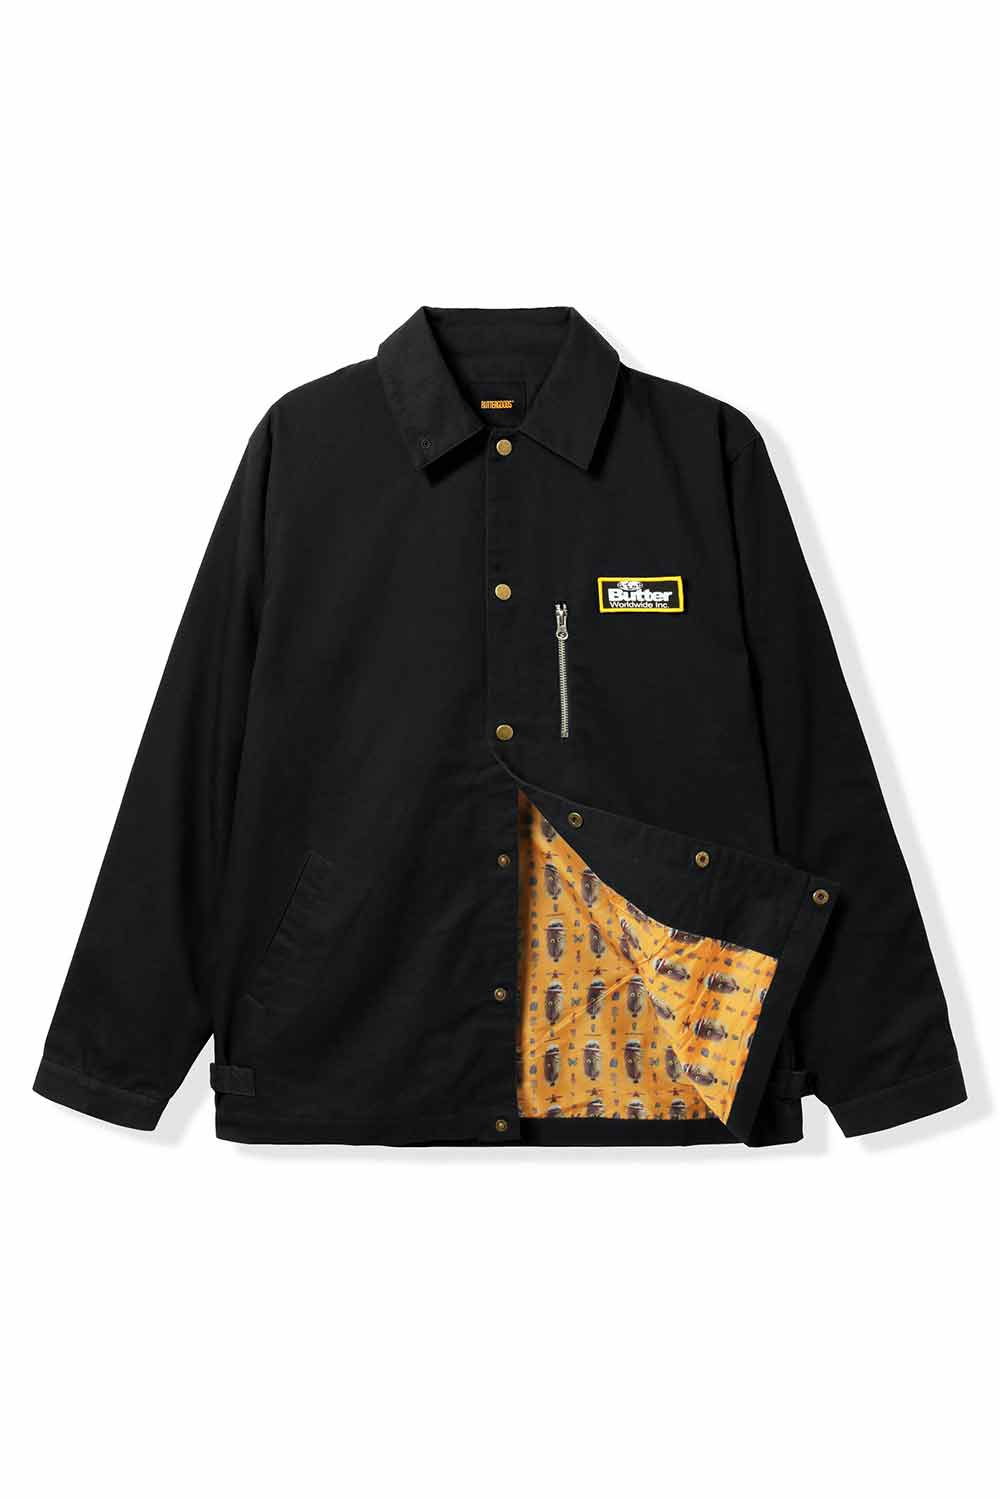 Butter Goods Campbell Jacket - Black